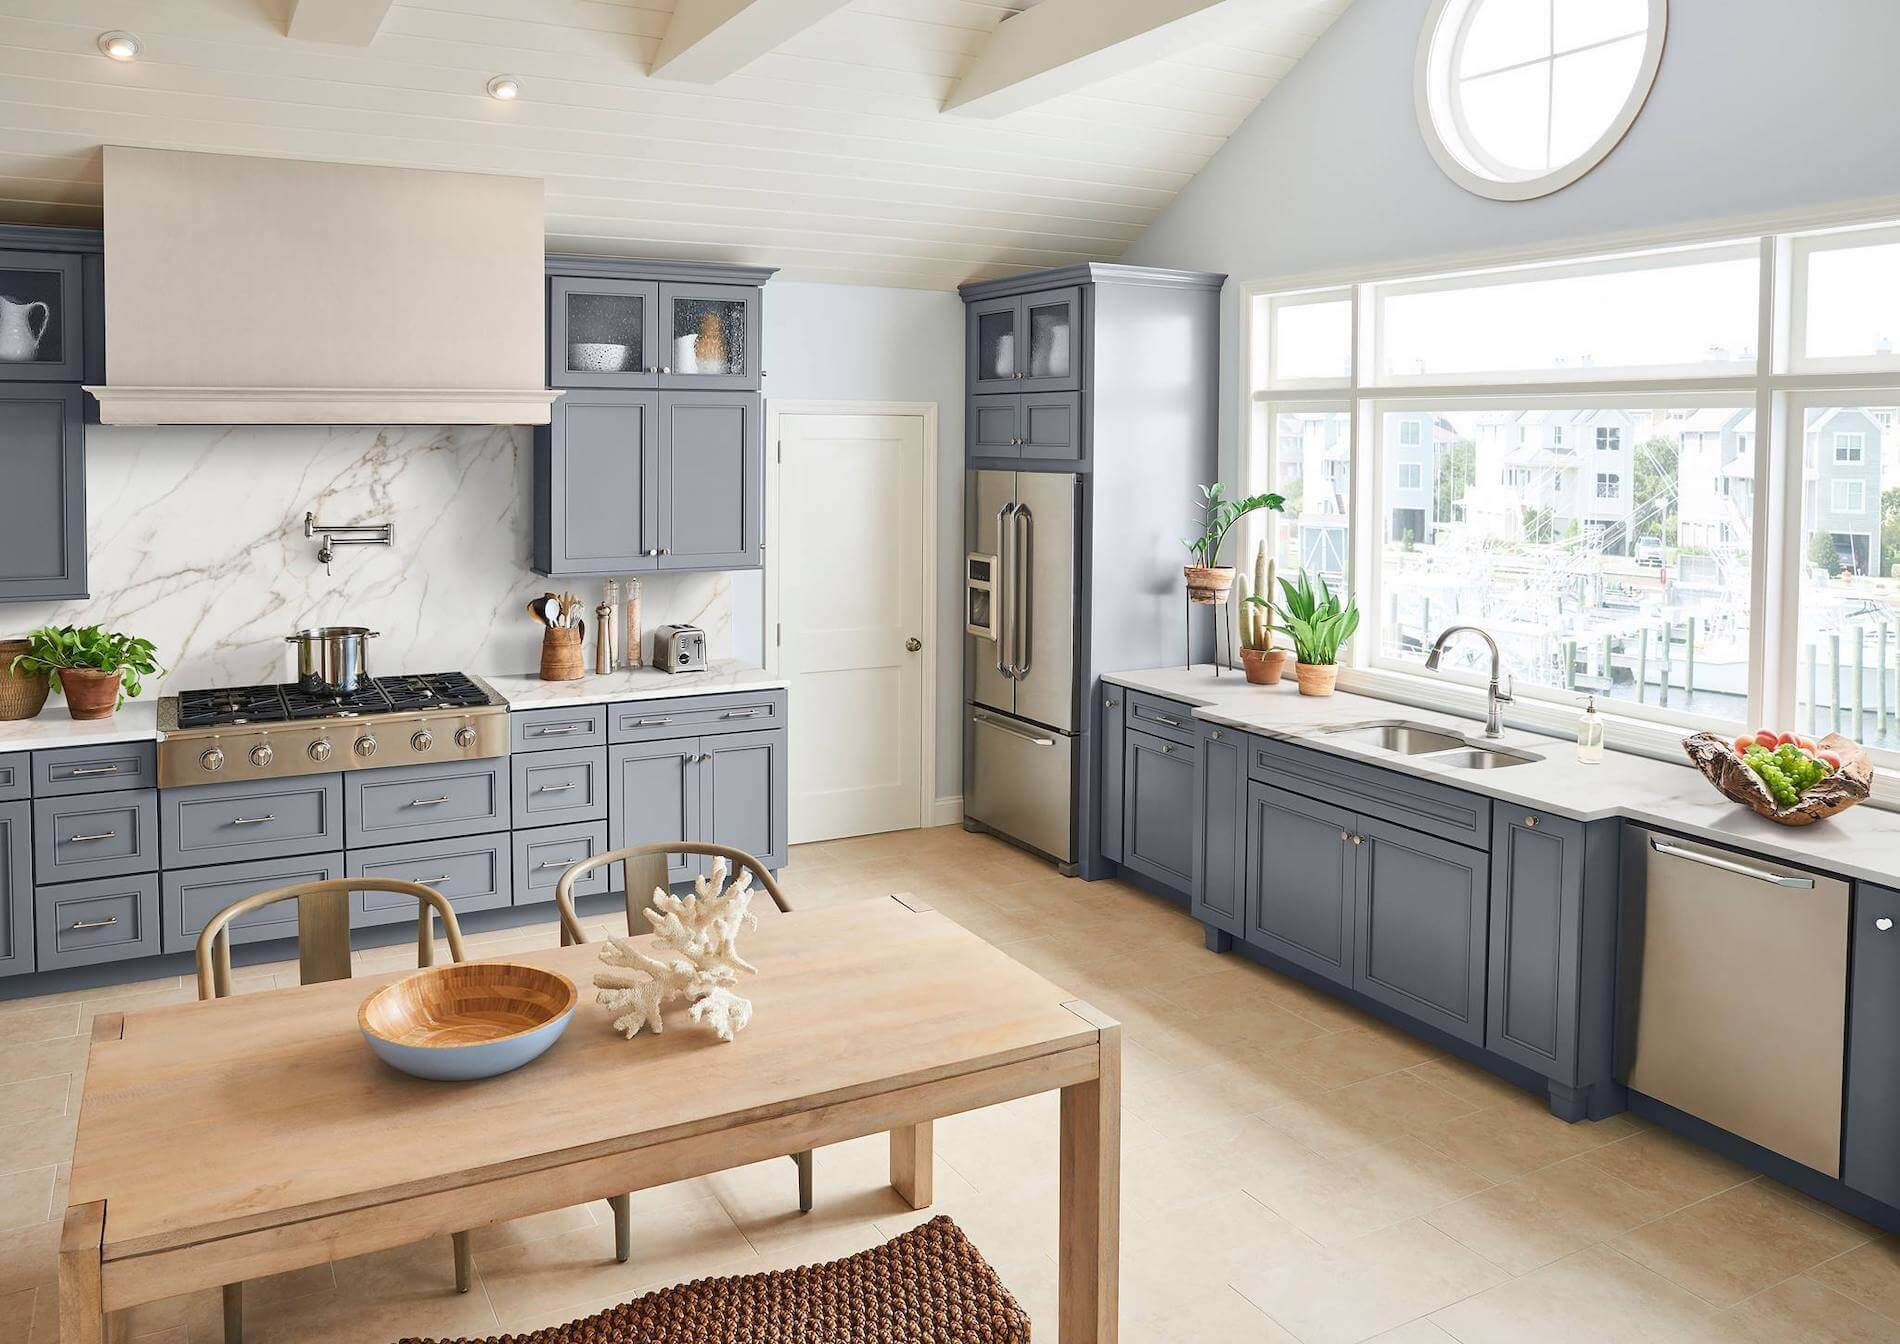 5 Simple Additions to Make You Fall in Love With Your Kitchen All Over Again